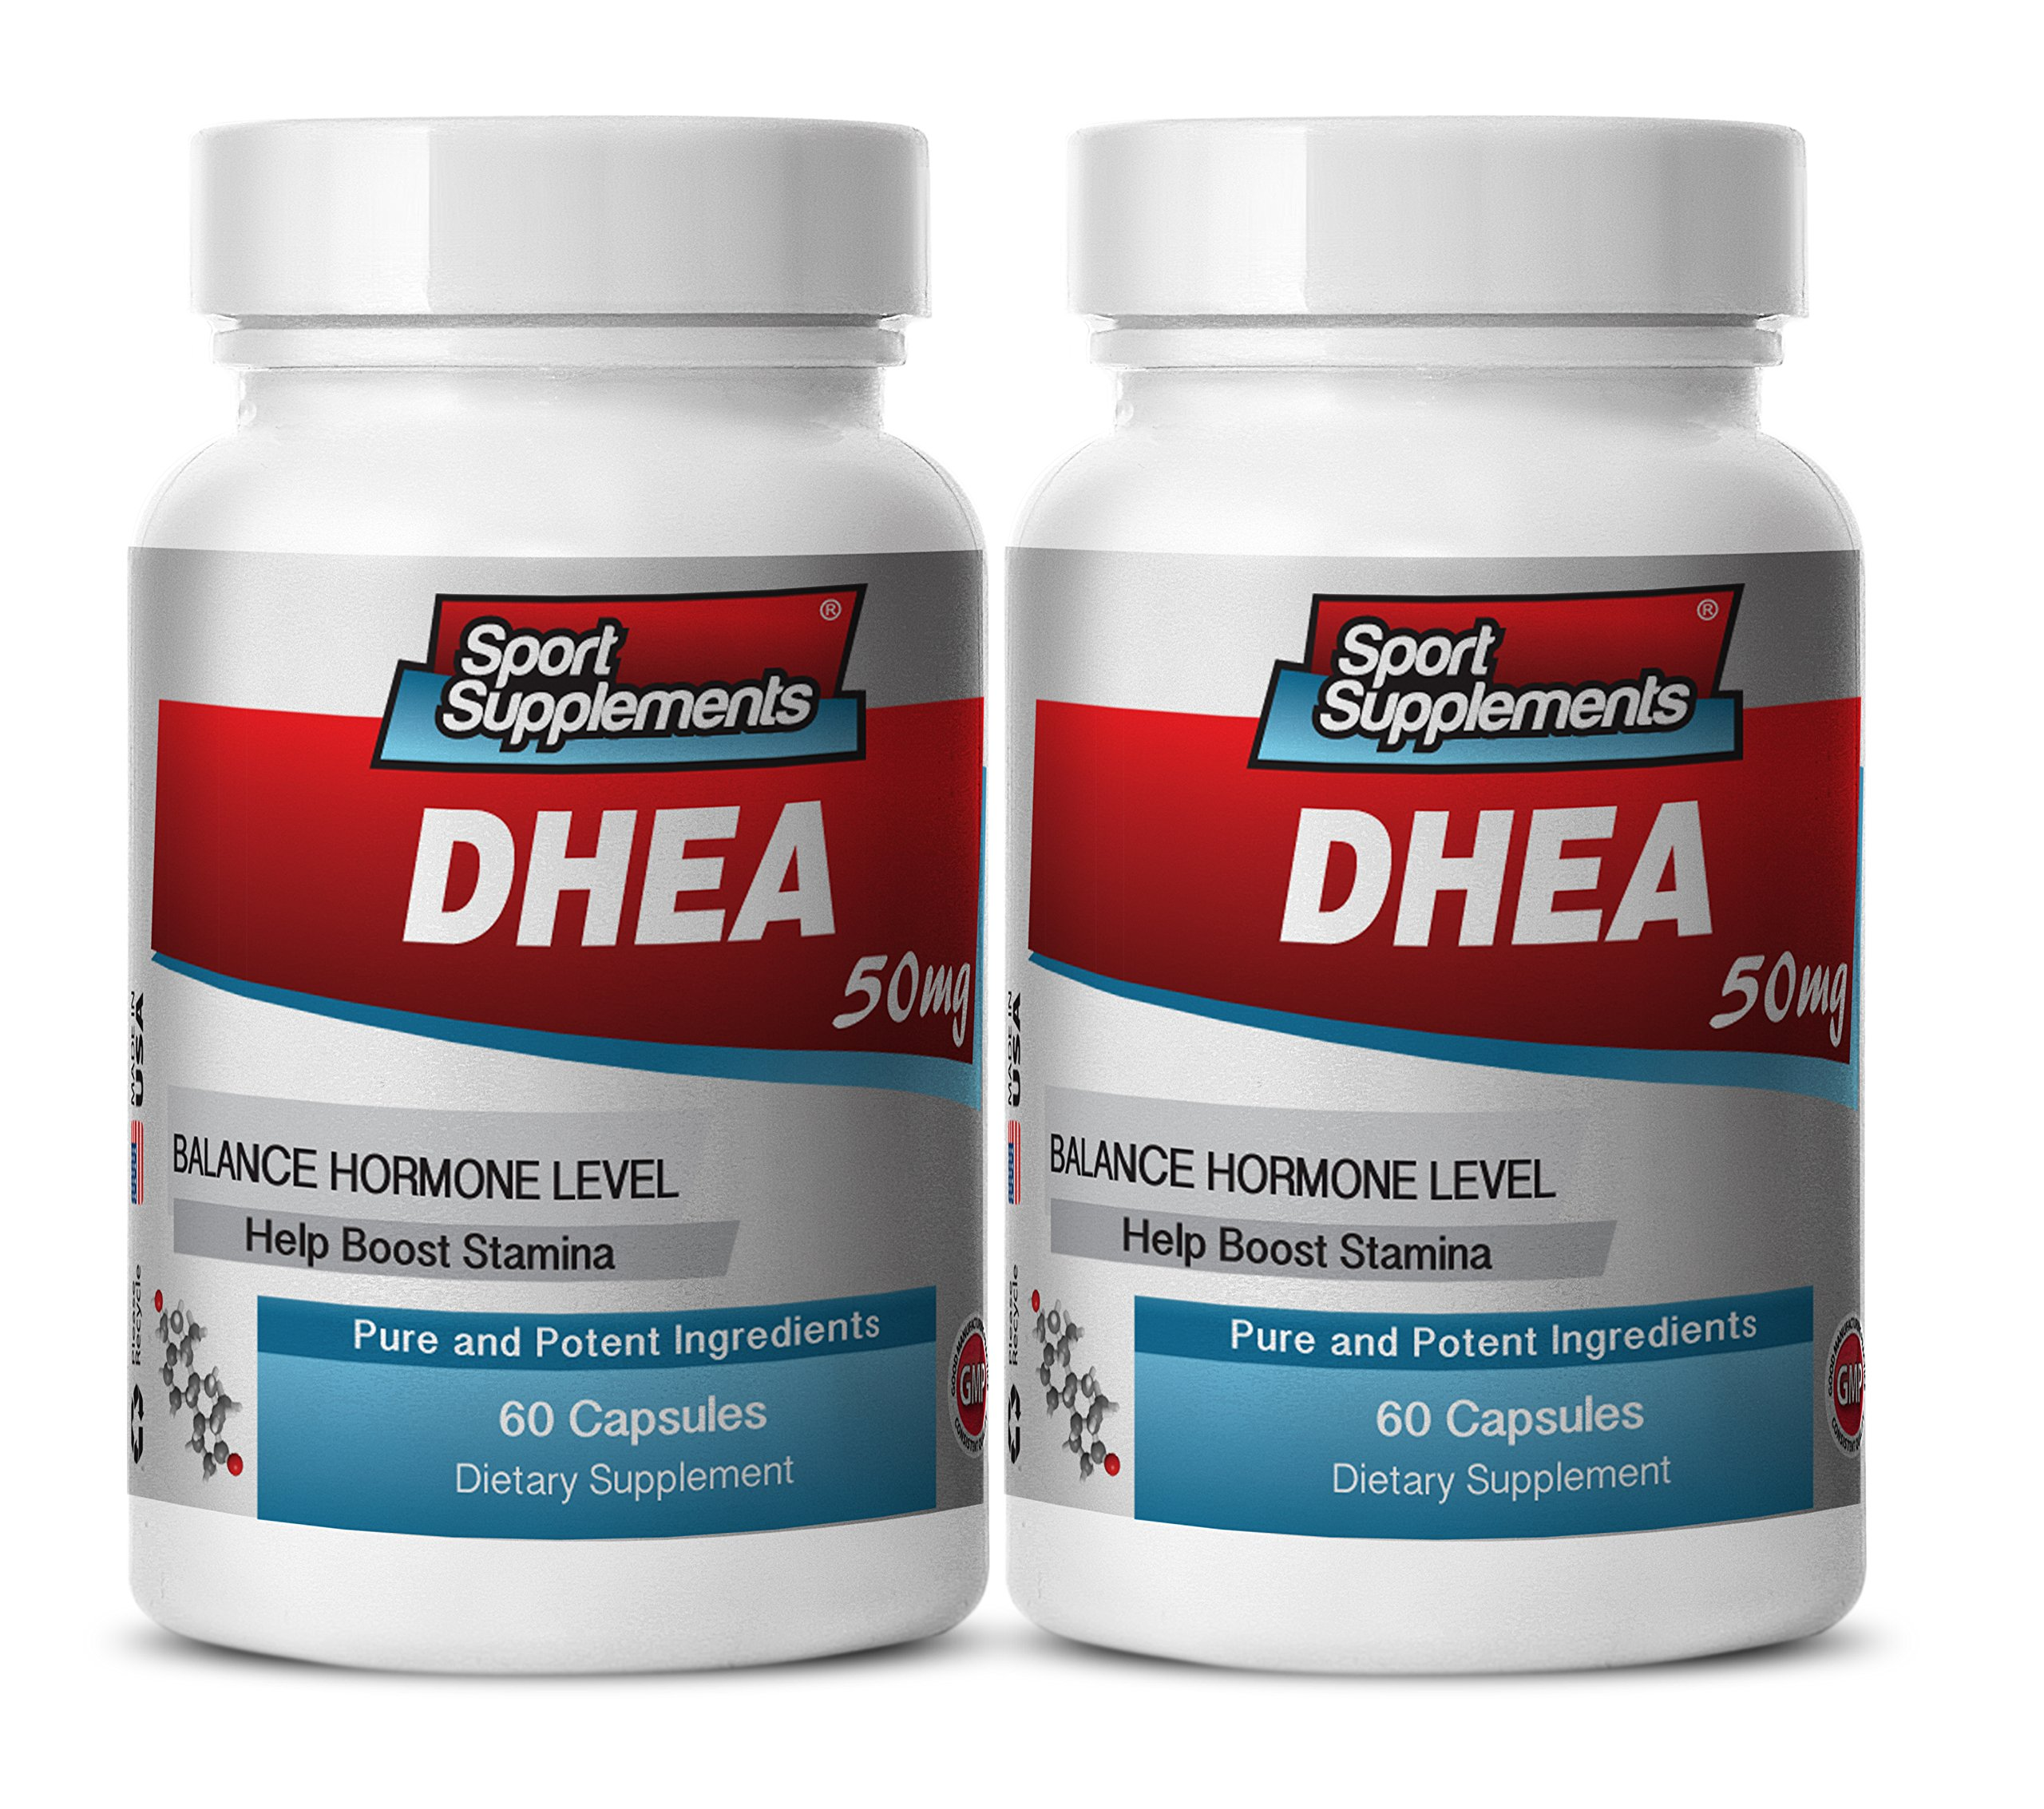 Pure dhea Supplement - DHEA 50mg - Premium DHEA Supplement to Enhance Sexual Performance, Desire and Sex Drive (2 bottles 120 capsules)